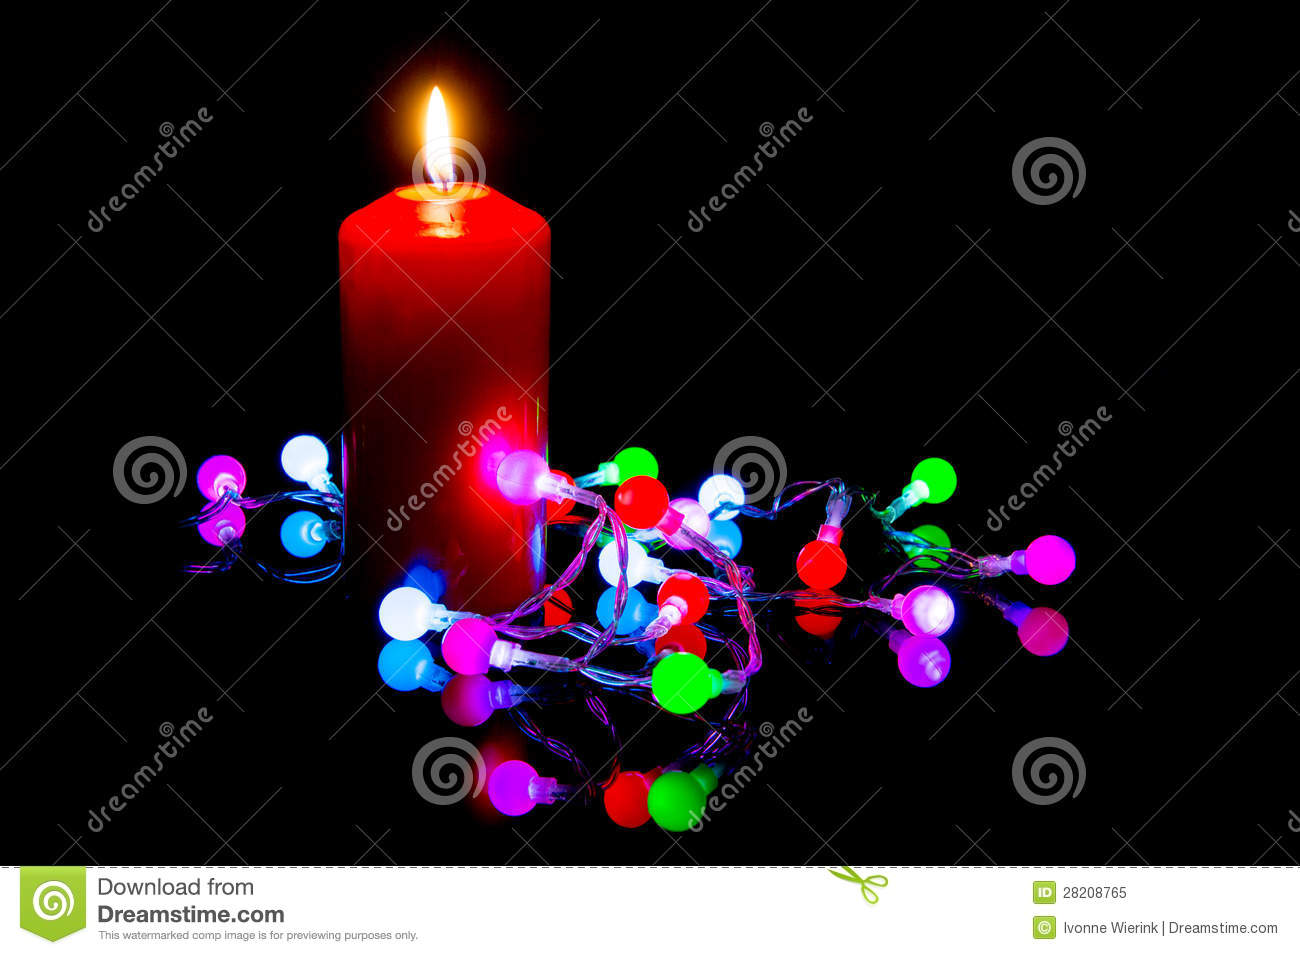 Colorful christmas lights with reflection and burning candle on back